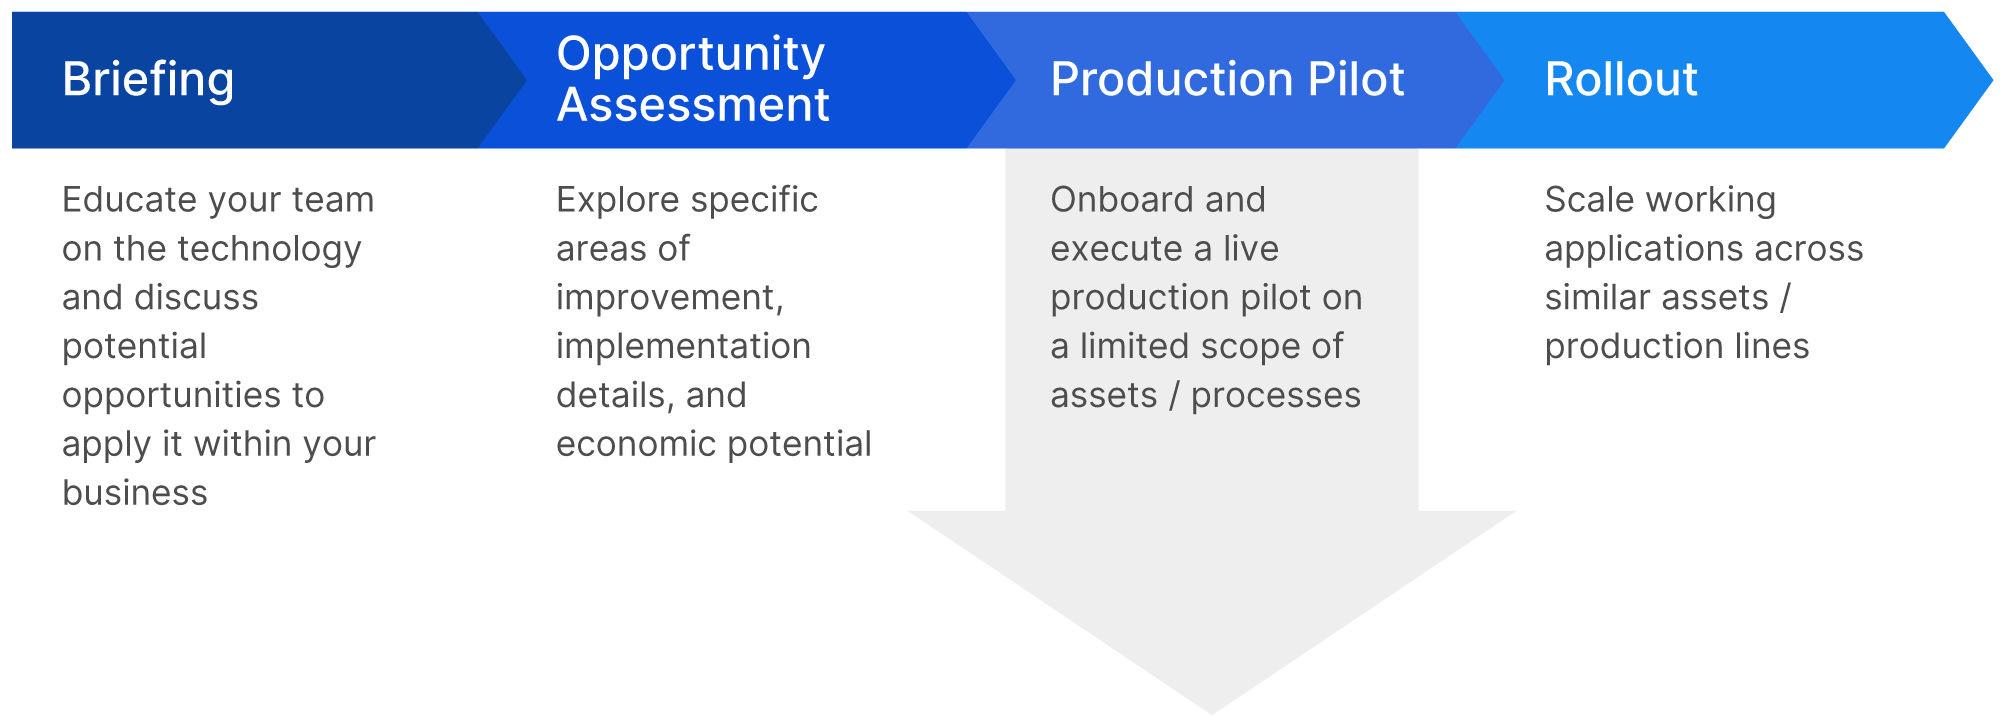 TwinThread's implementation journey is a strategic process that we have refined over the years. It involves Briefing your team on the capabilities of the technology, Assessing the Opportunities for increased efficiency and improved performance, conducting a Production Pilot of a limited and fixed scope to prove value, and executing a full Rollout to scale that value across similar assets / production lines.